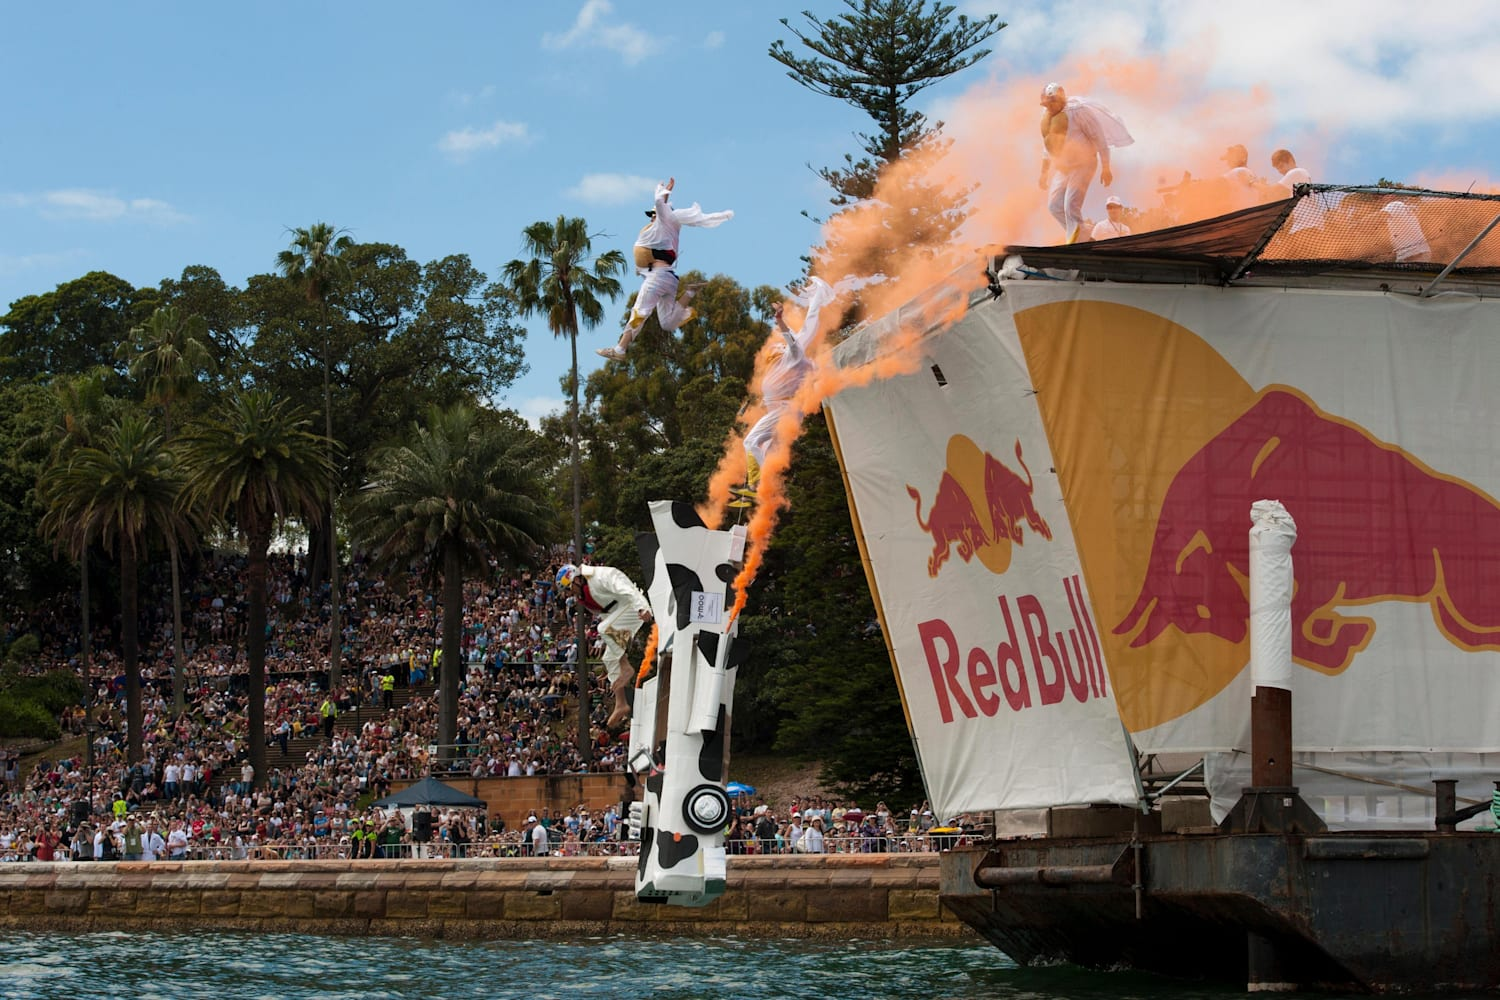 Red Bull Event